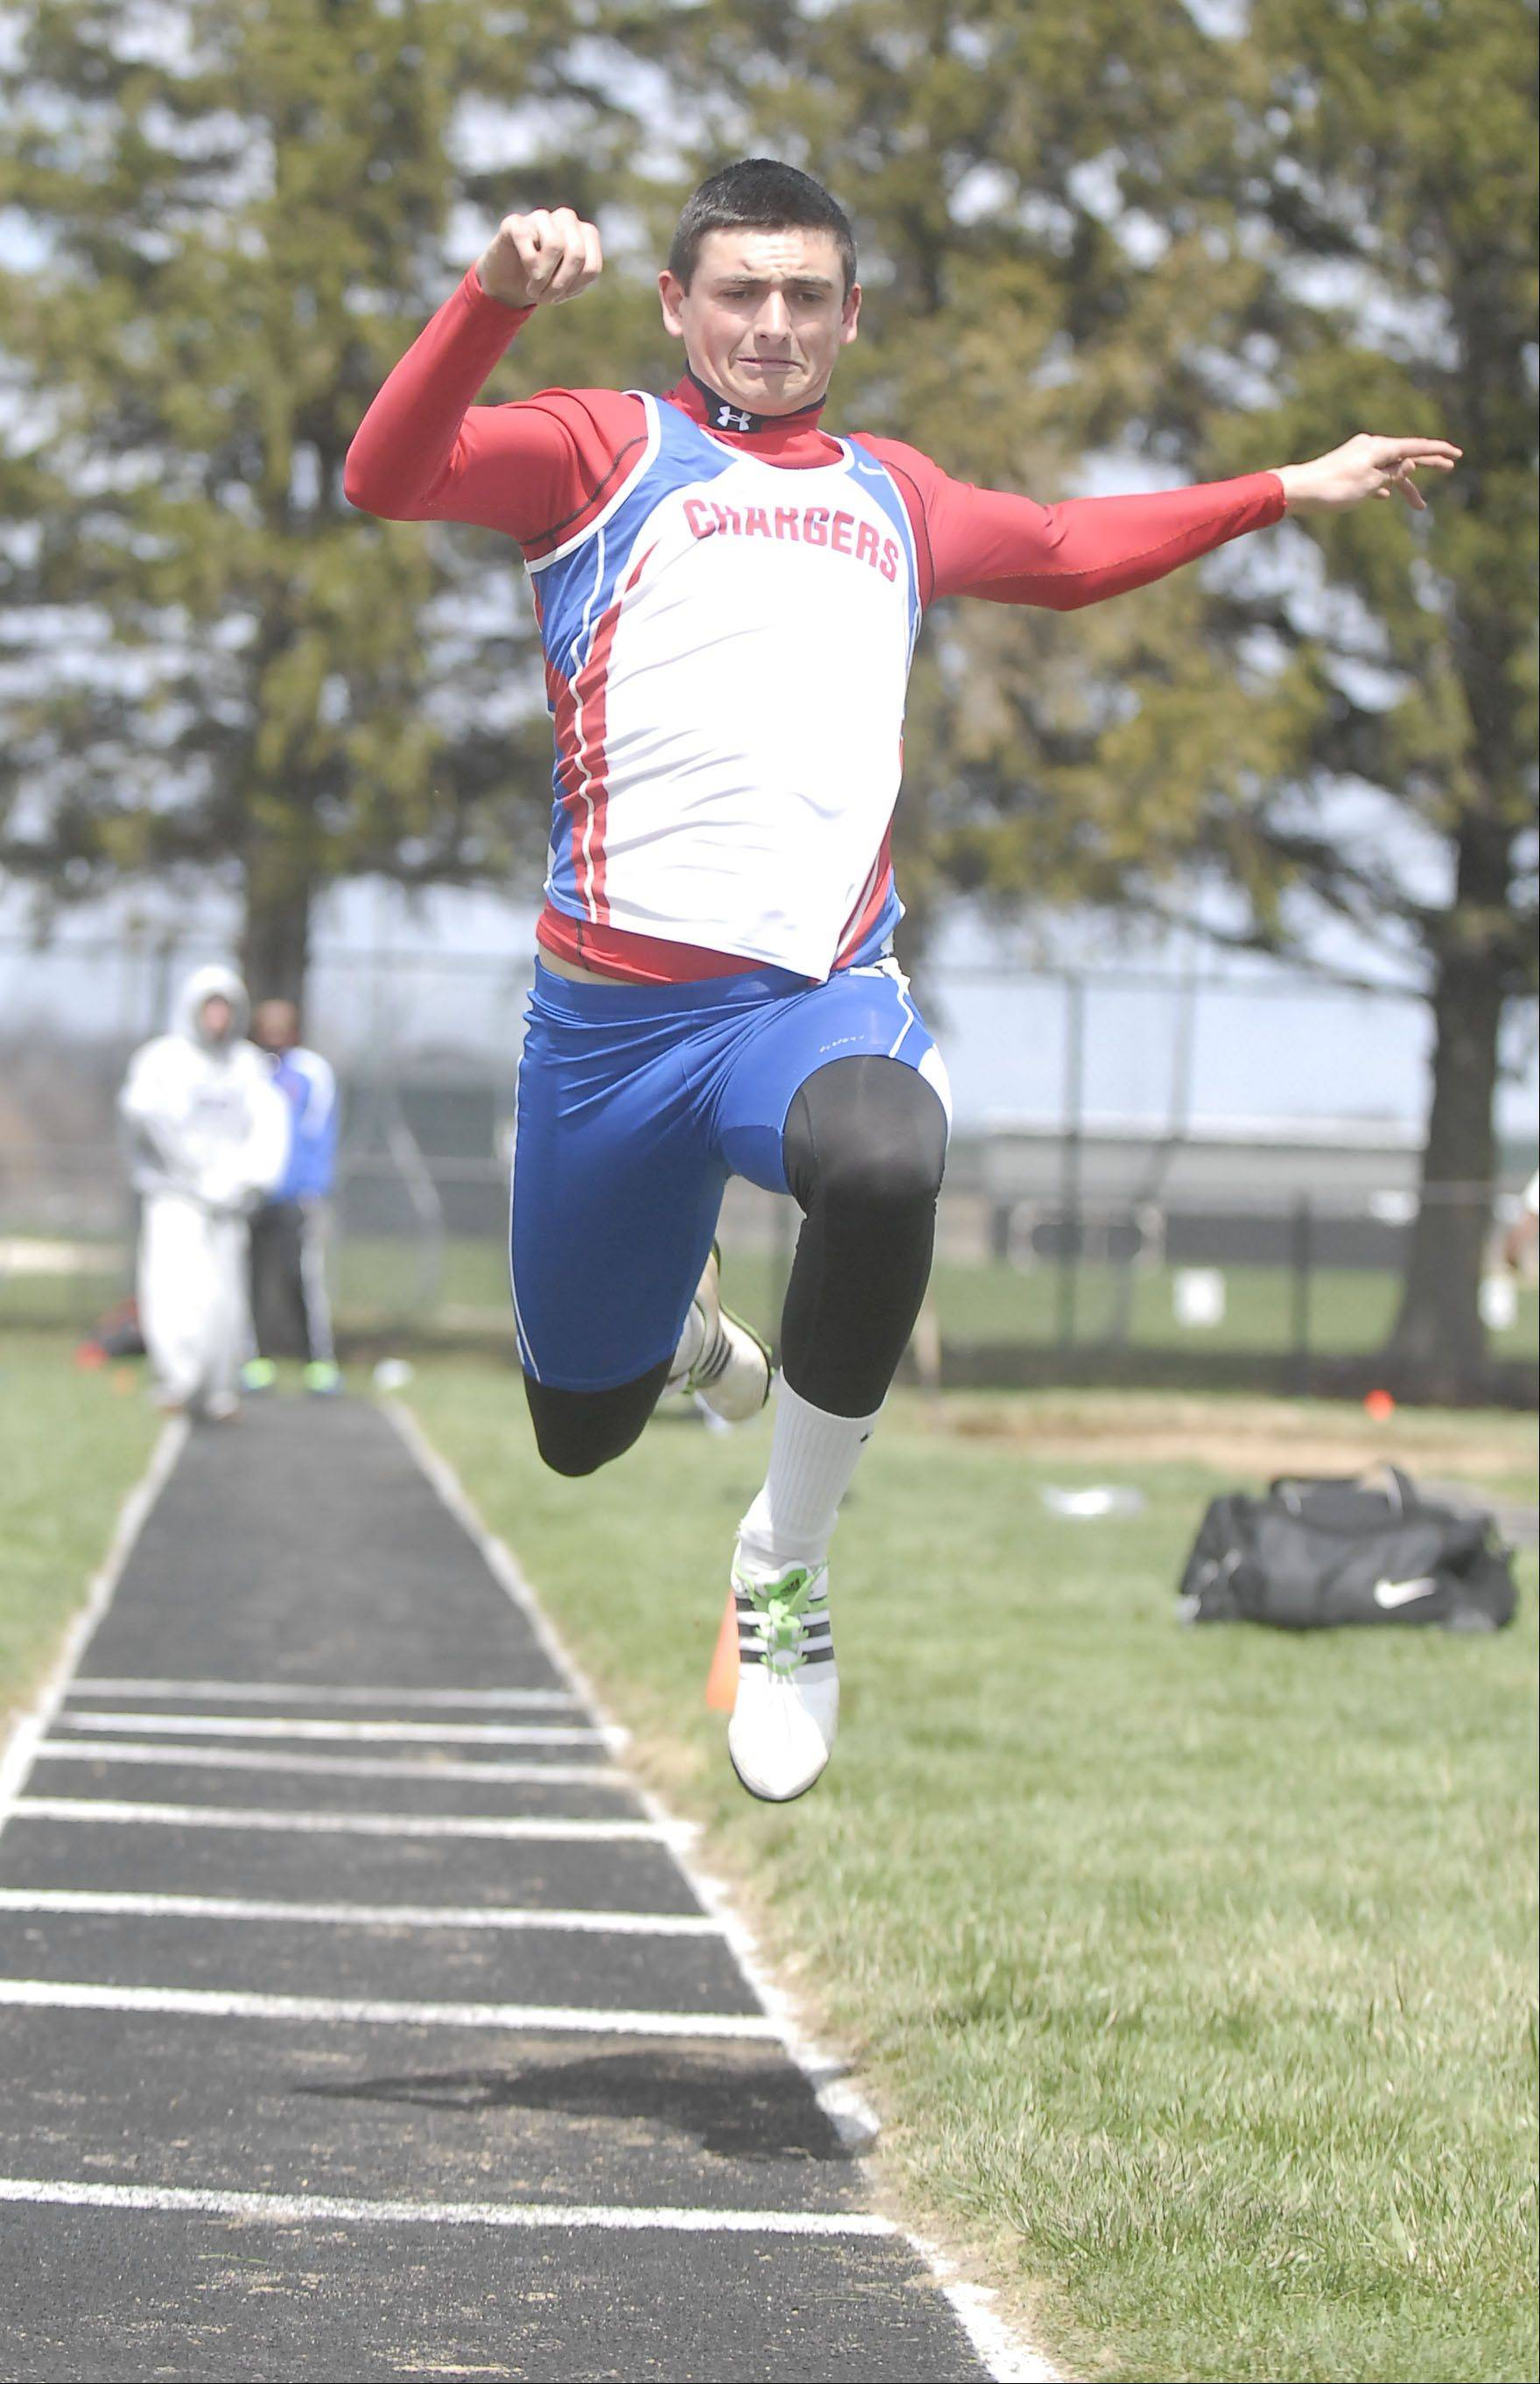 Dundee-Crown's RJ Schmidt in the triple jump finals at the Kaneland meet on Saturday, April 20.